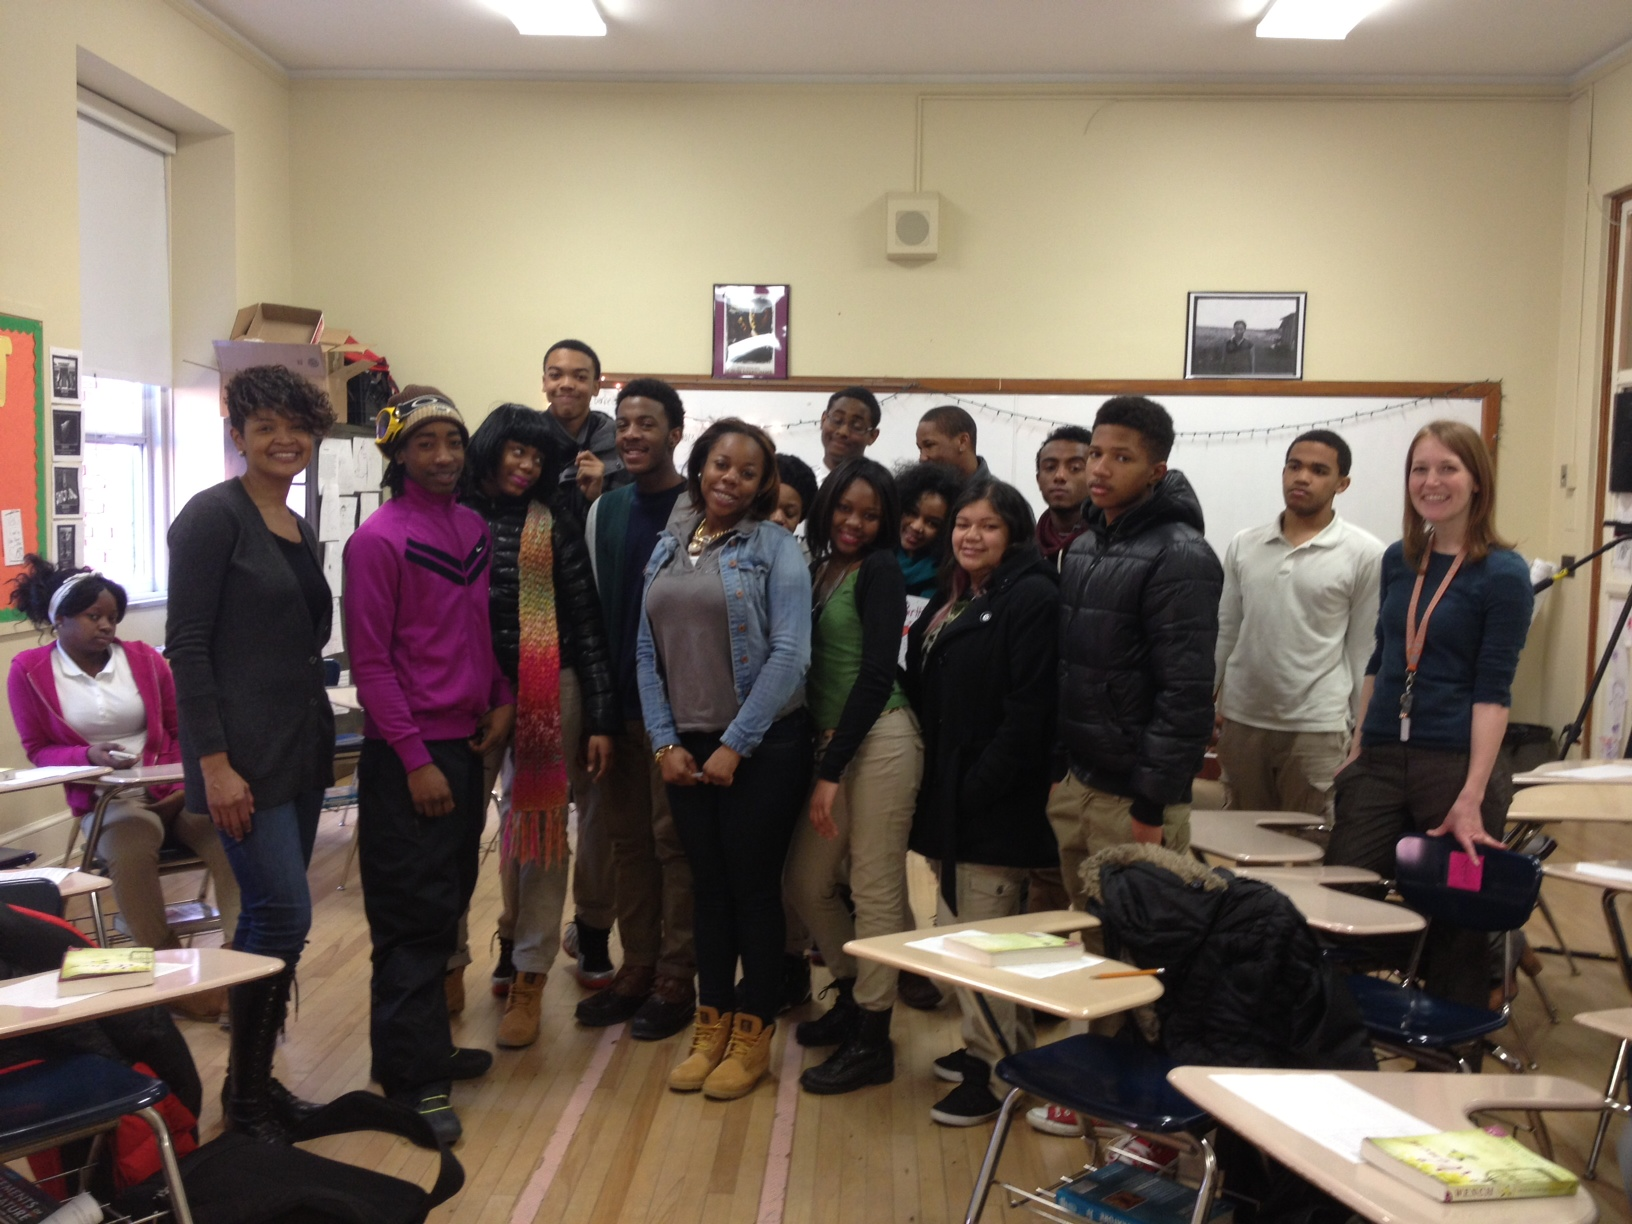 Author Dolen Perkins-Valdez poses with students from Coolidge.